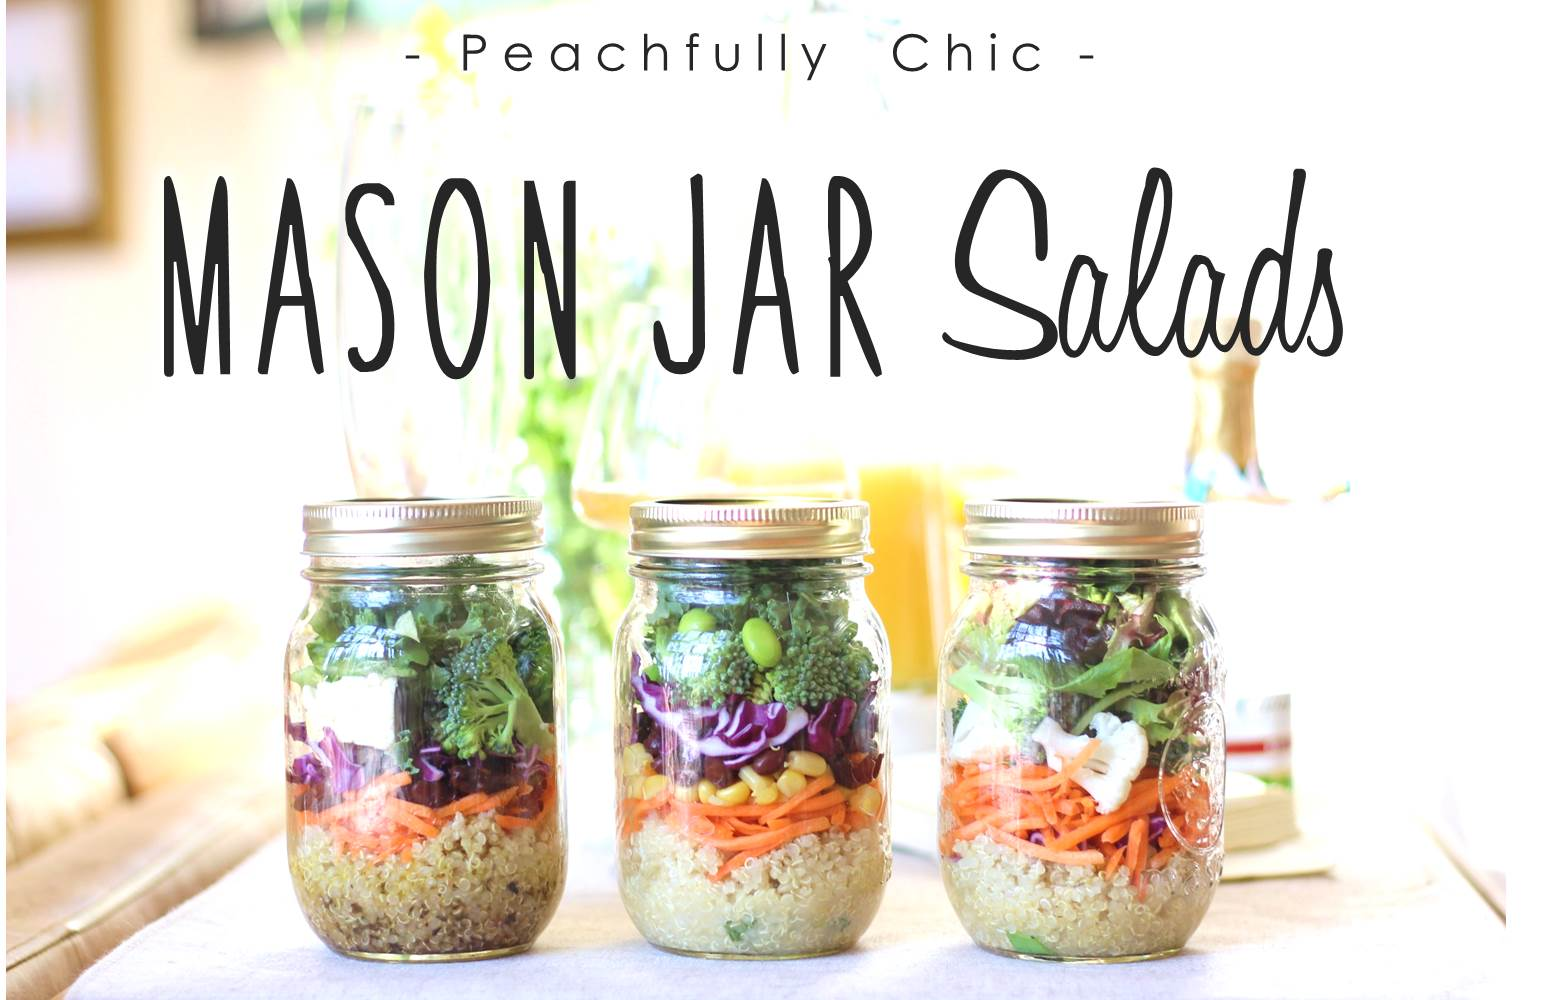 Peachfully-Chic-Mason-Jar-Salads-main